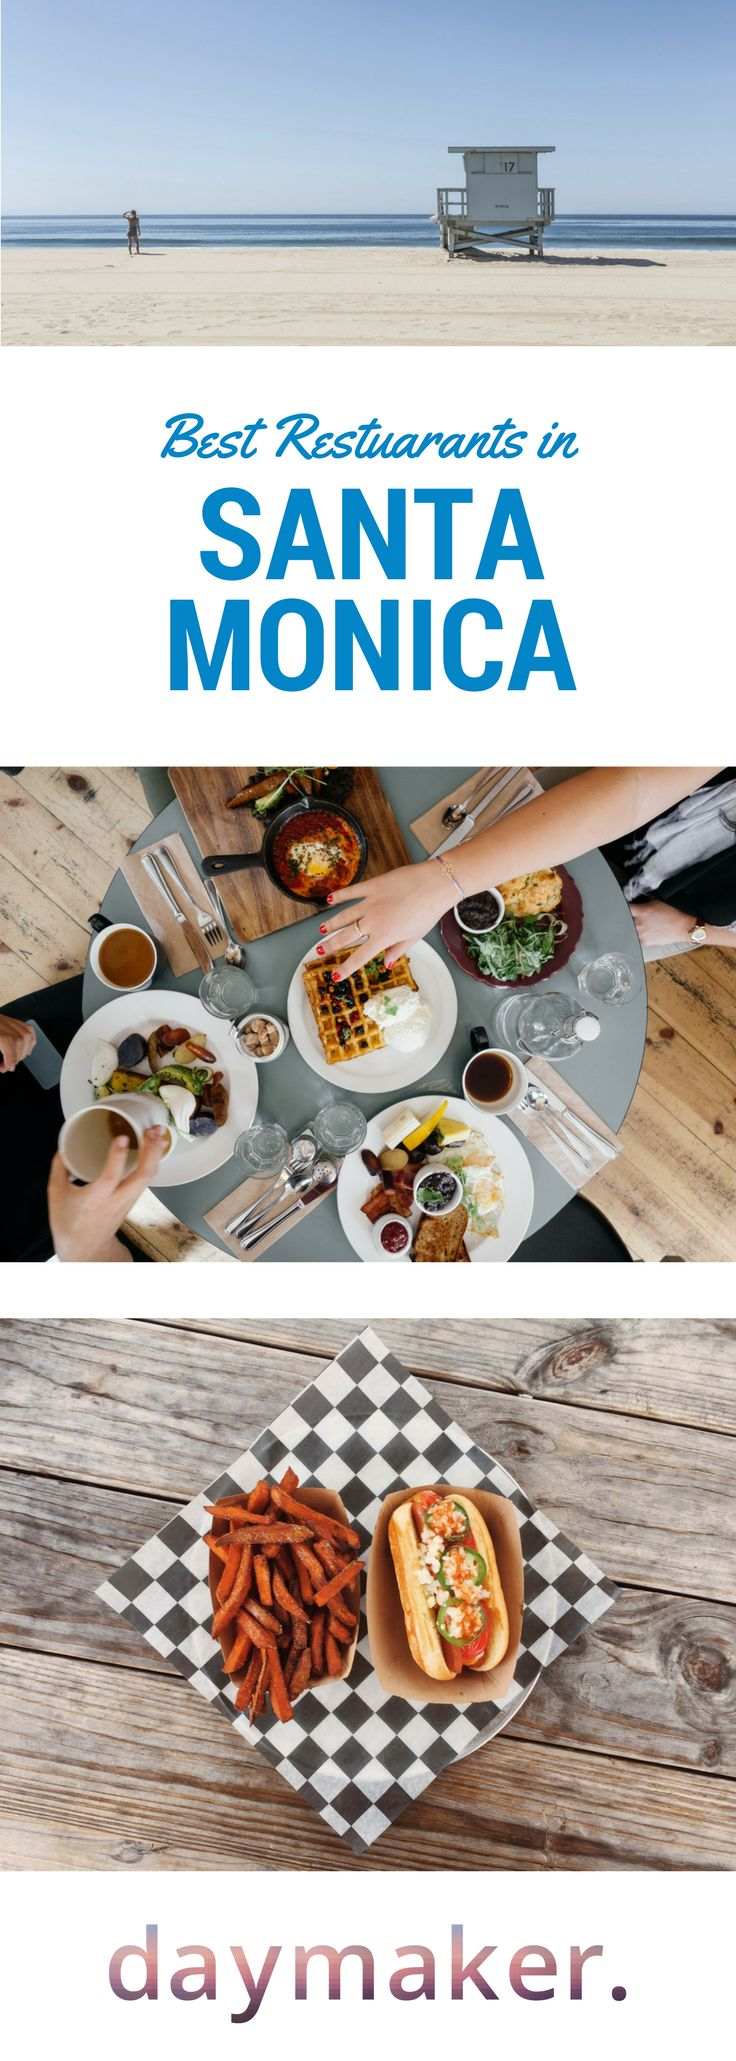 Looking for the best restaurants in Santa Monica? Click on the link to find out the best of where and what to eat in Santa Monica, recommended by Daymaker.